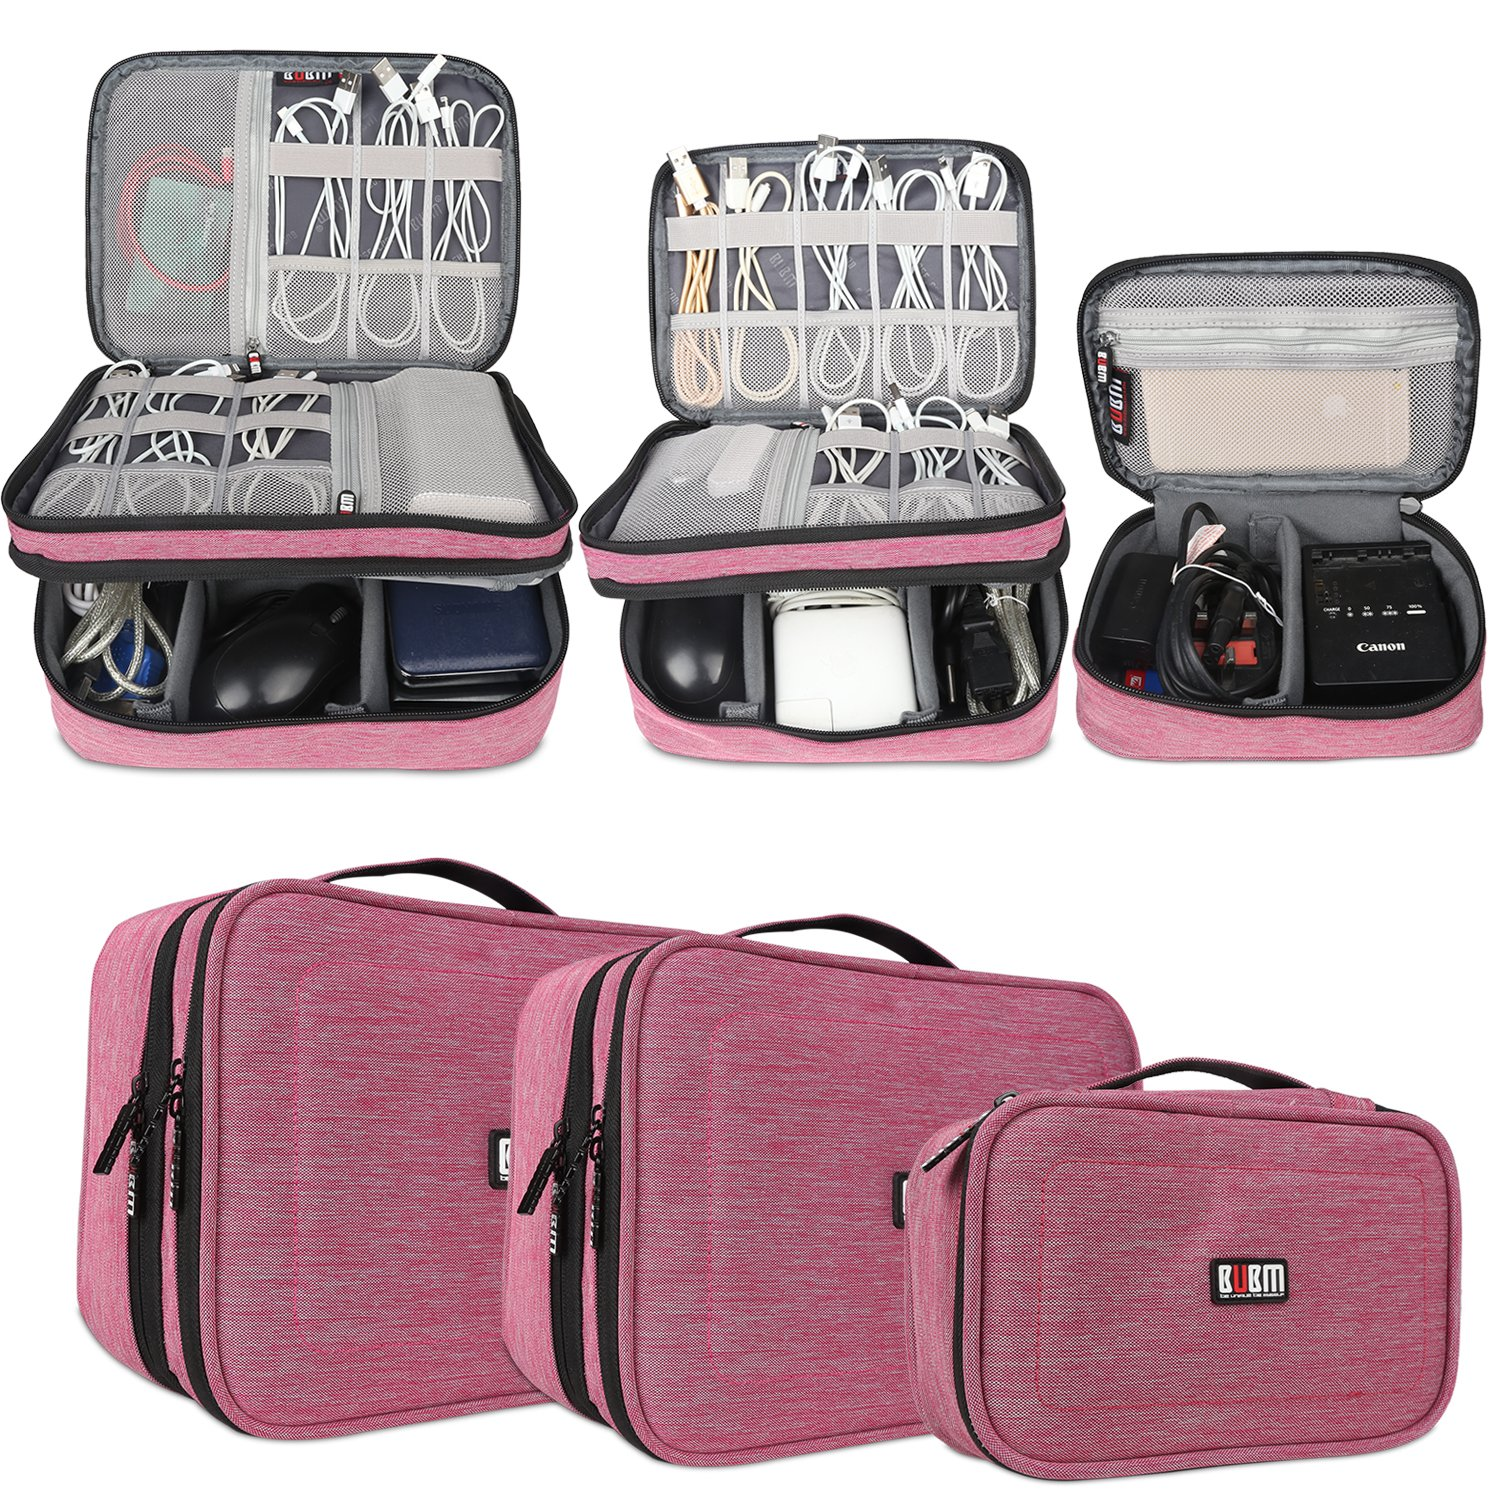 Memory Cards CF Cards and More-a Sleeve Pouch Fits for iPad BUBM Gadget Organizer Case Plugs Ultra-Compact Electronics Organiser for Data Cables Chargers Large, Black